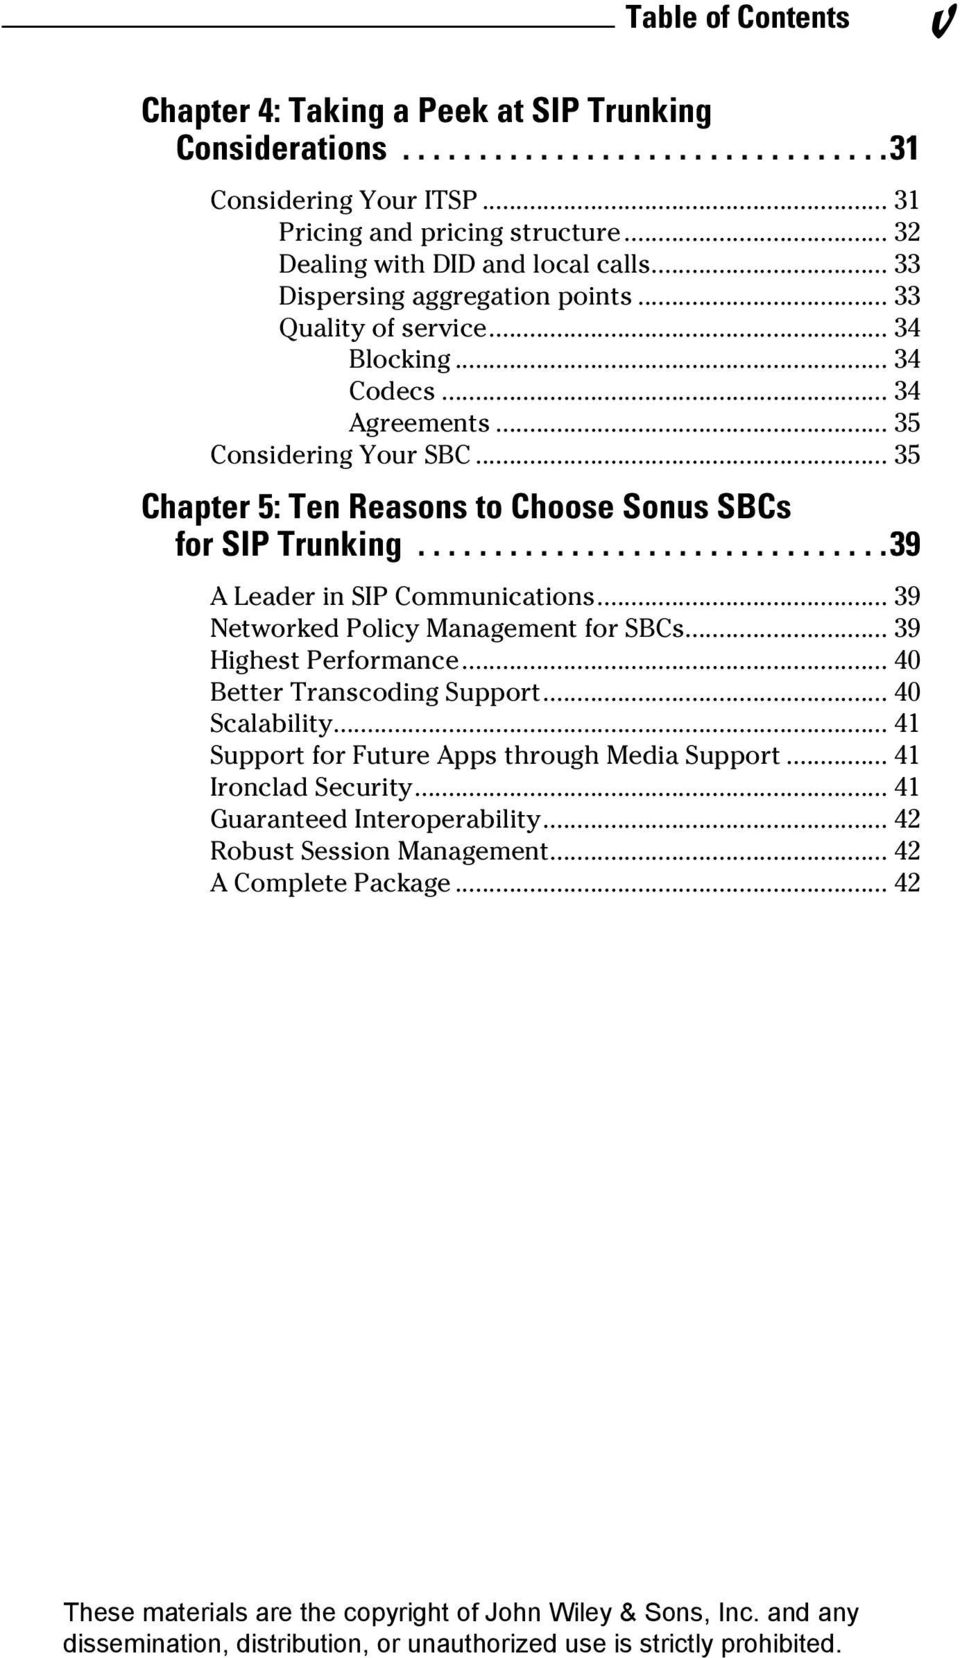 .. 35 Chapter 5: Ten Reasons to Choose Sonus SBCs for SIP Trunking... 39 A Leader in SIP Communications... 39 Networked Policy Management for SBCs... 39 Highest Performance.